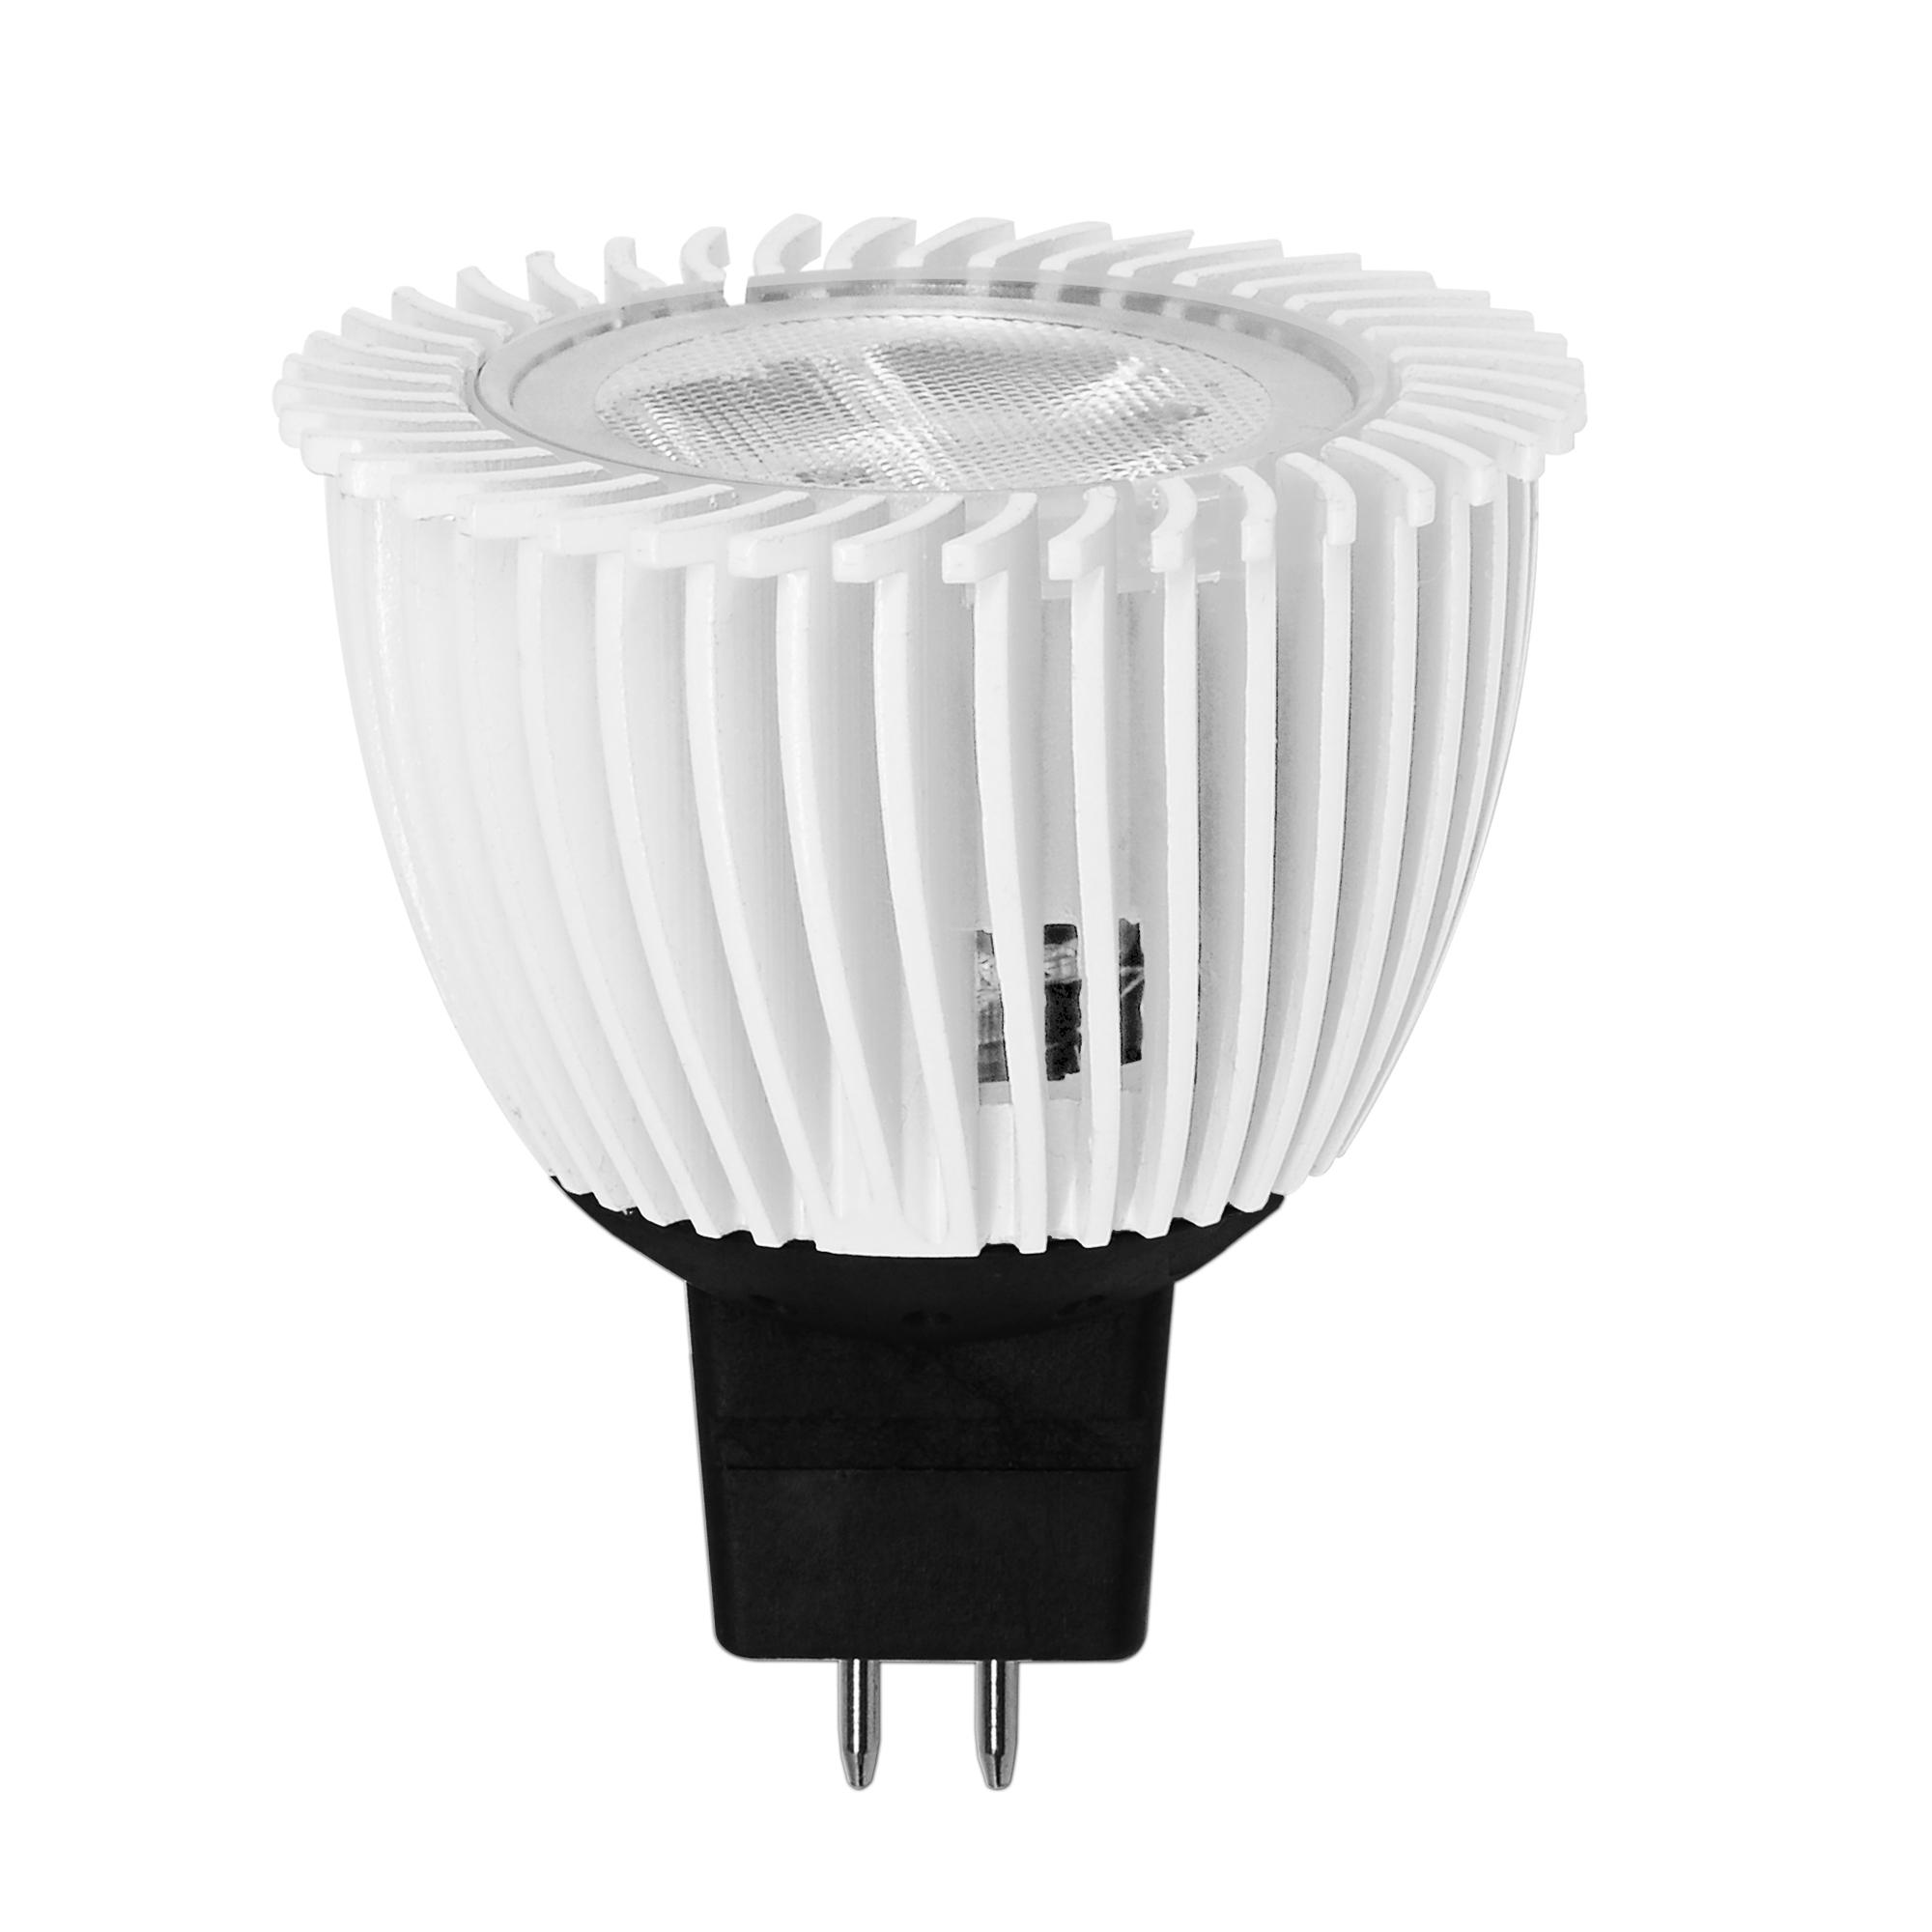 Mr16 Dimmable Led Uk: MR16 LED & Driver 7W 420lm (=50W) Dimmable 45° 4200K Cool